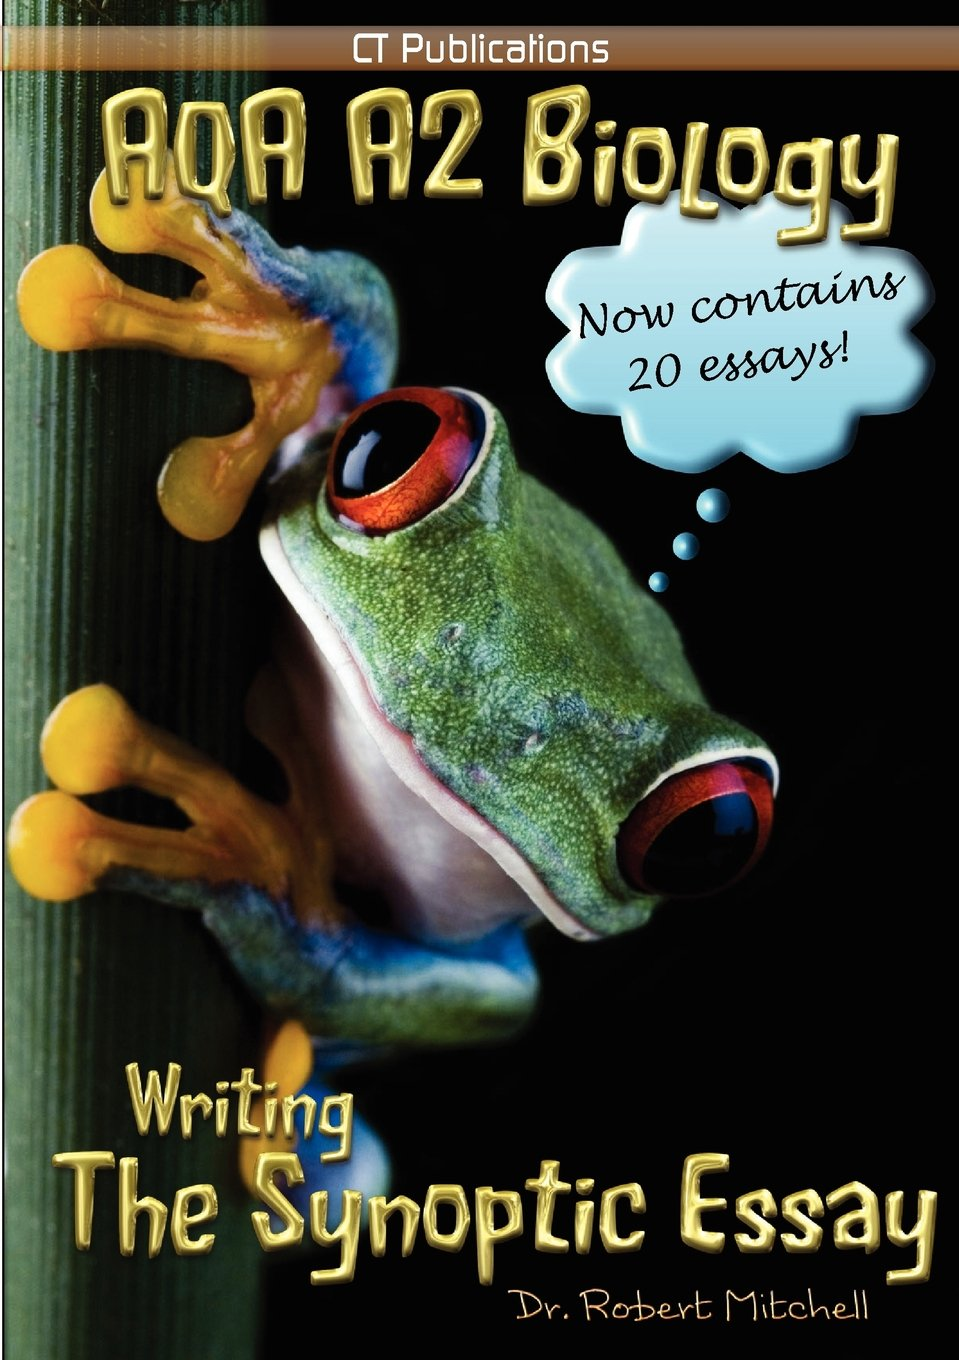 aqa a biology writing the synoptic essay robert mitchell  aqa a2 biology writing the synoptic essay robert mitchell 9781907769009 amazon com books